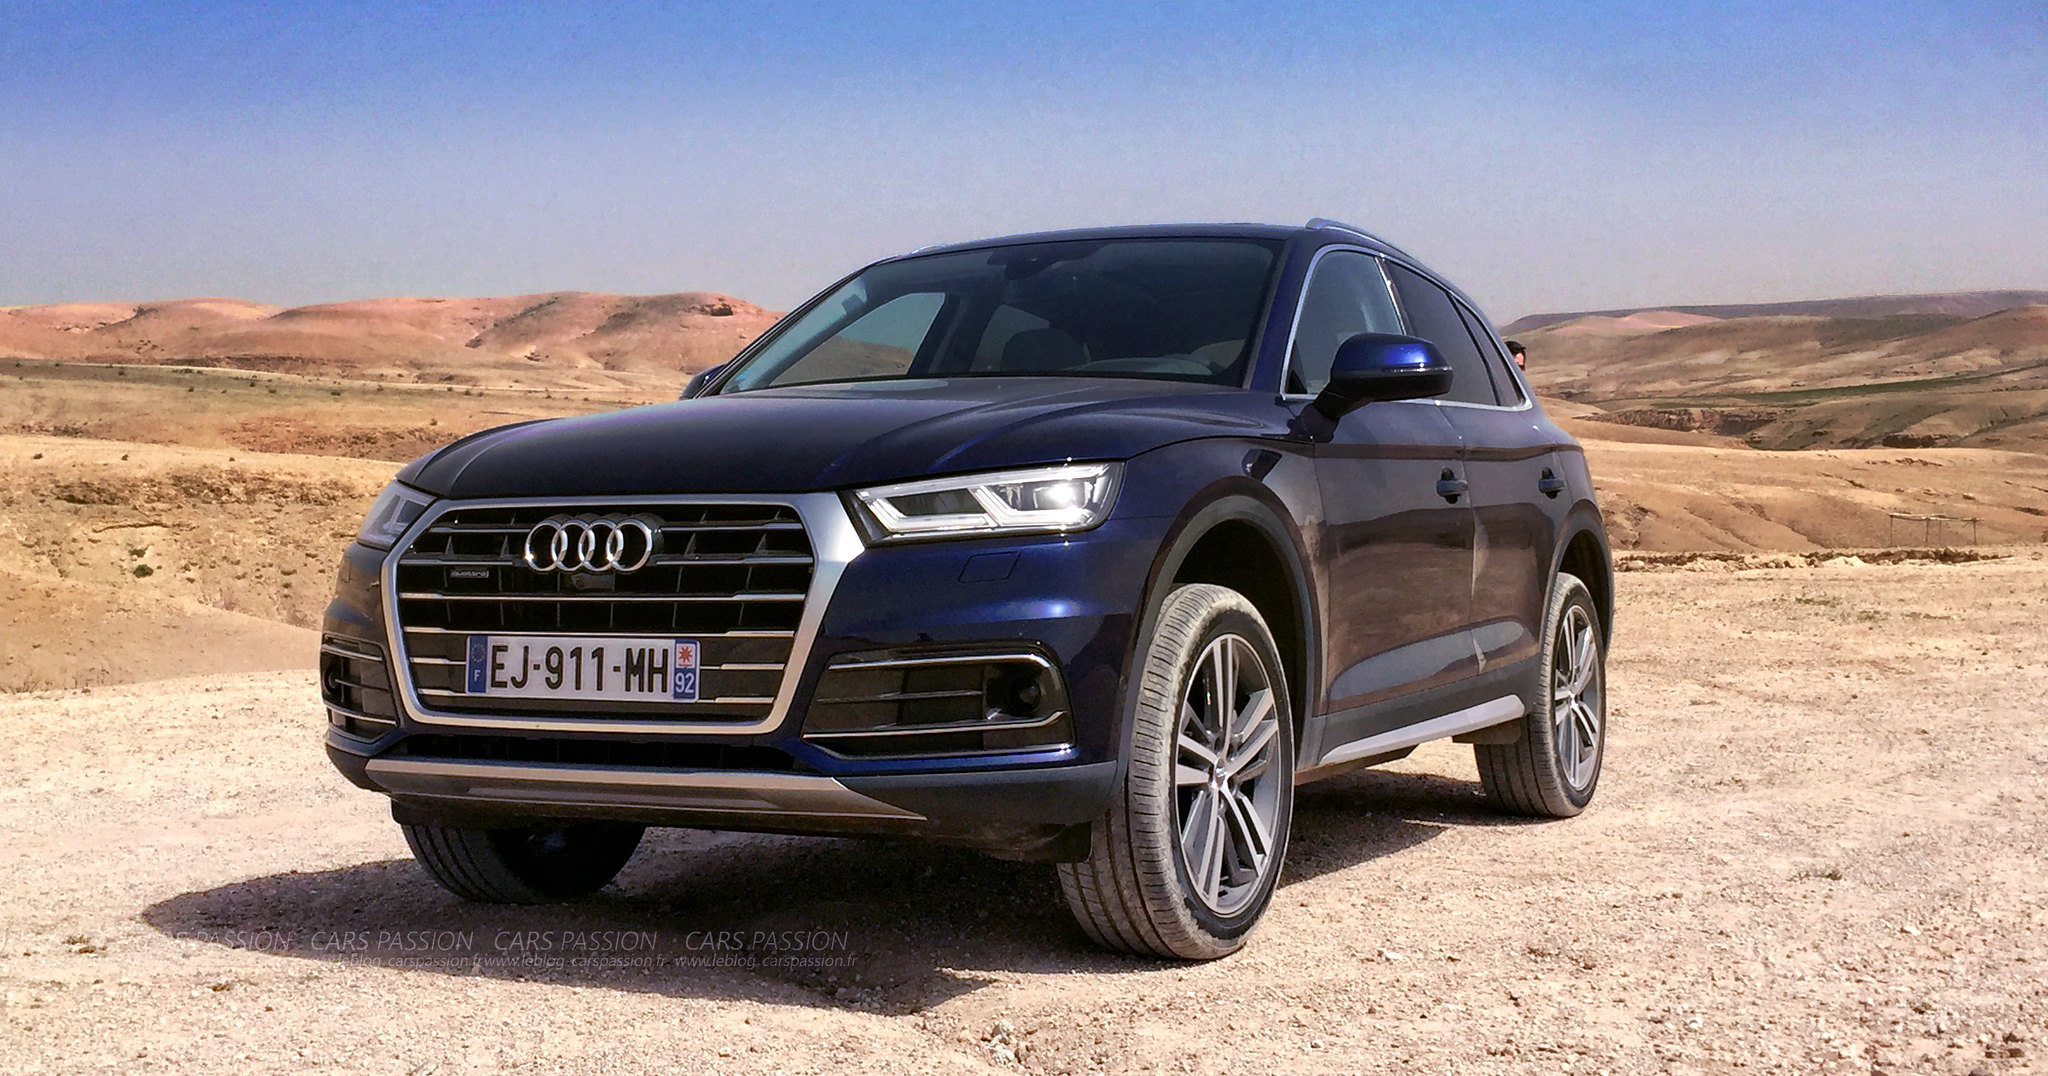 essai nouveau audi q5 tdi 190 et tfsi 252 quattro avis performances off road. Black Bedroom Furniture Sets. Home Design Ideas